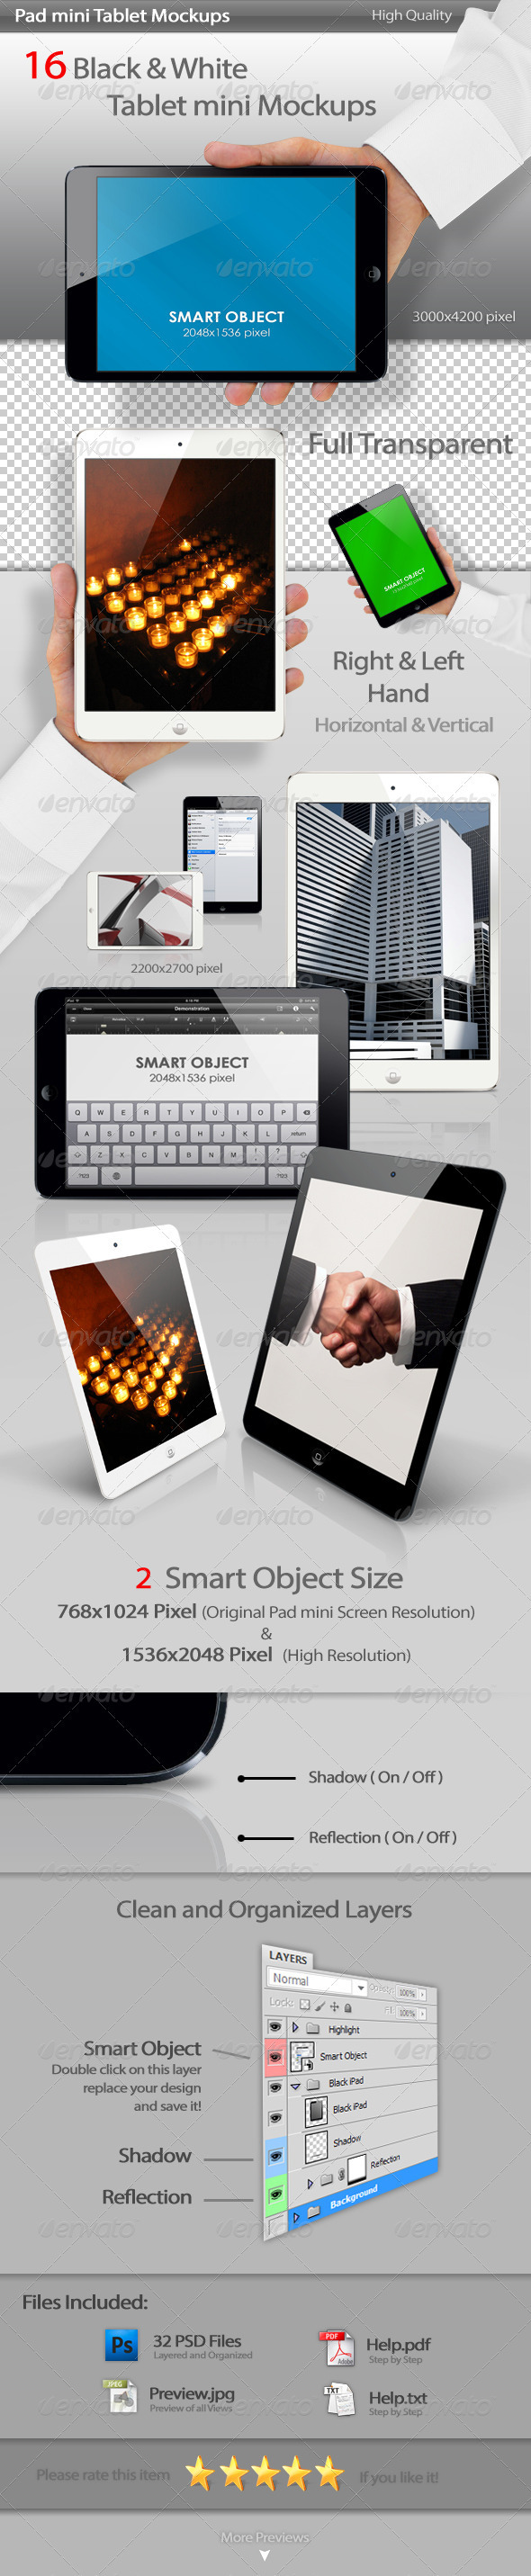 Pad mini Tablet Mockups - Mobile Displays